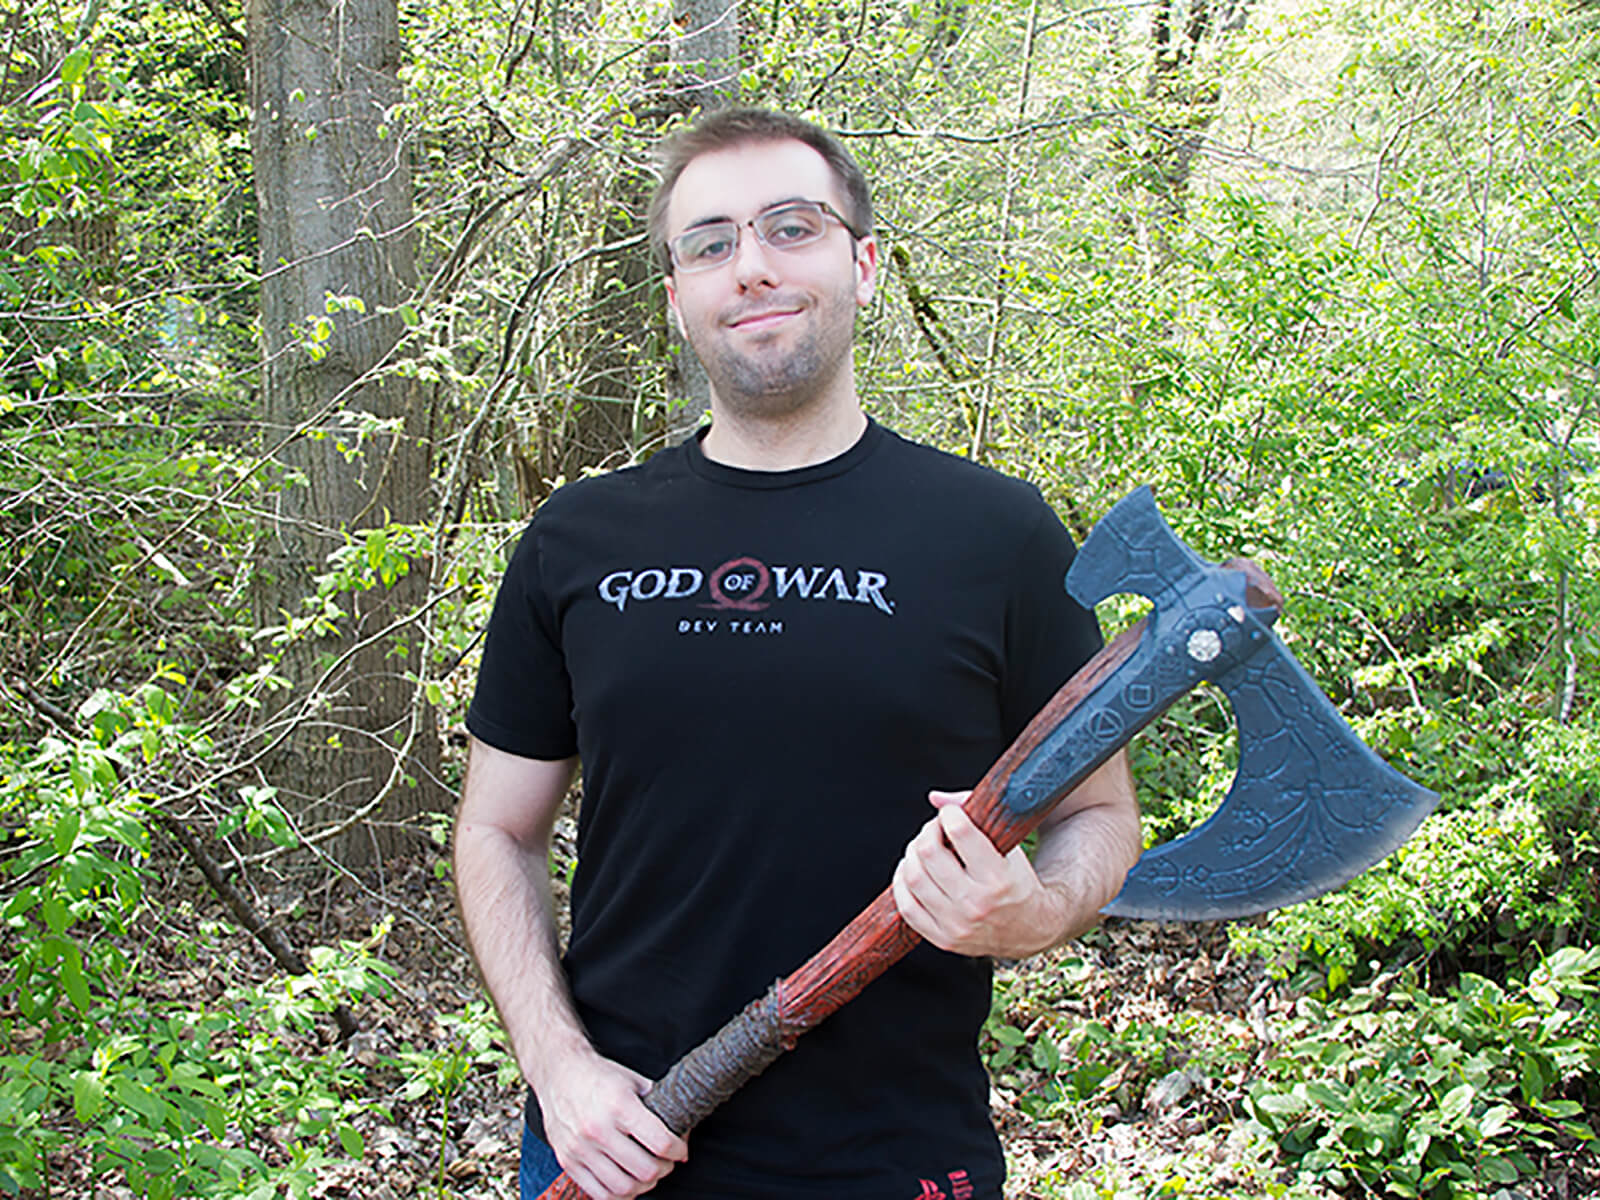 DigiPen alumni Ryan Baker poses with a fake ax on the DigiPen campus